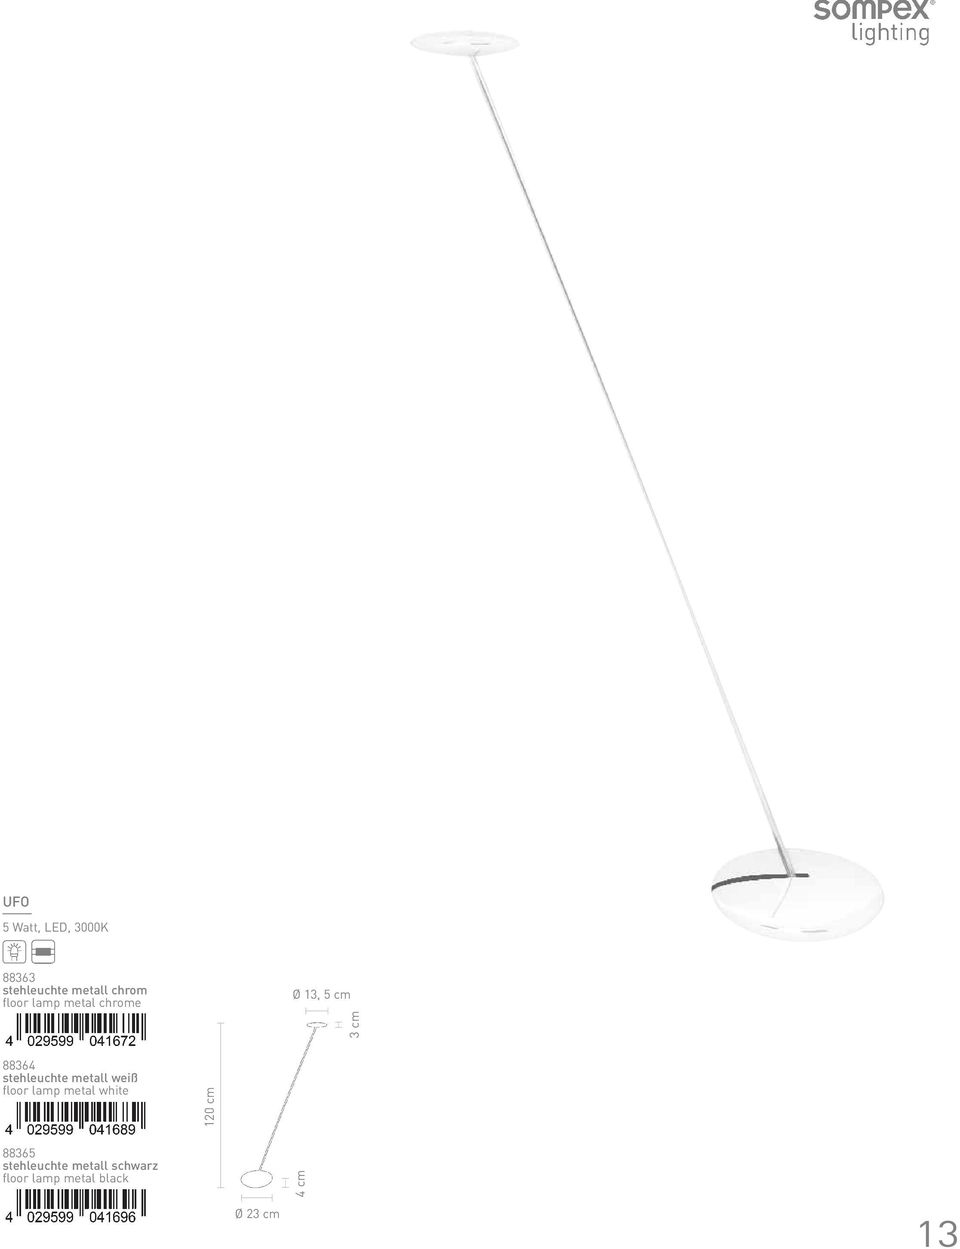 stehleuchte metall weiß floor lamp metal white 120 cm